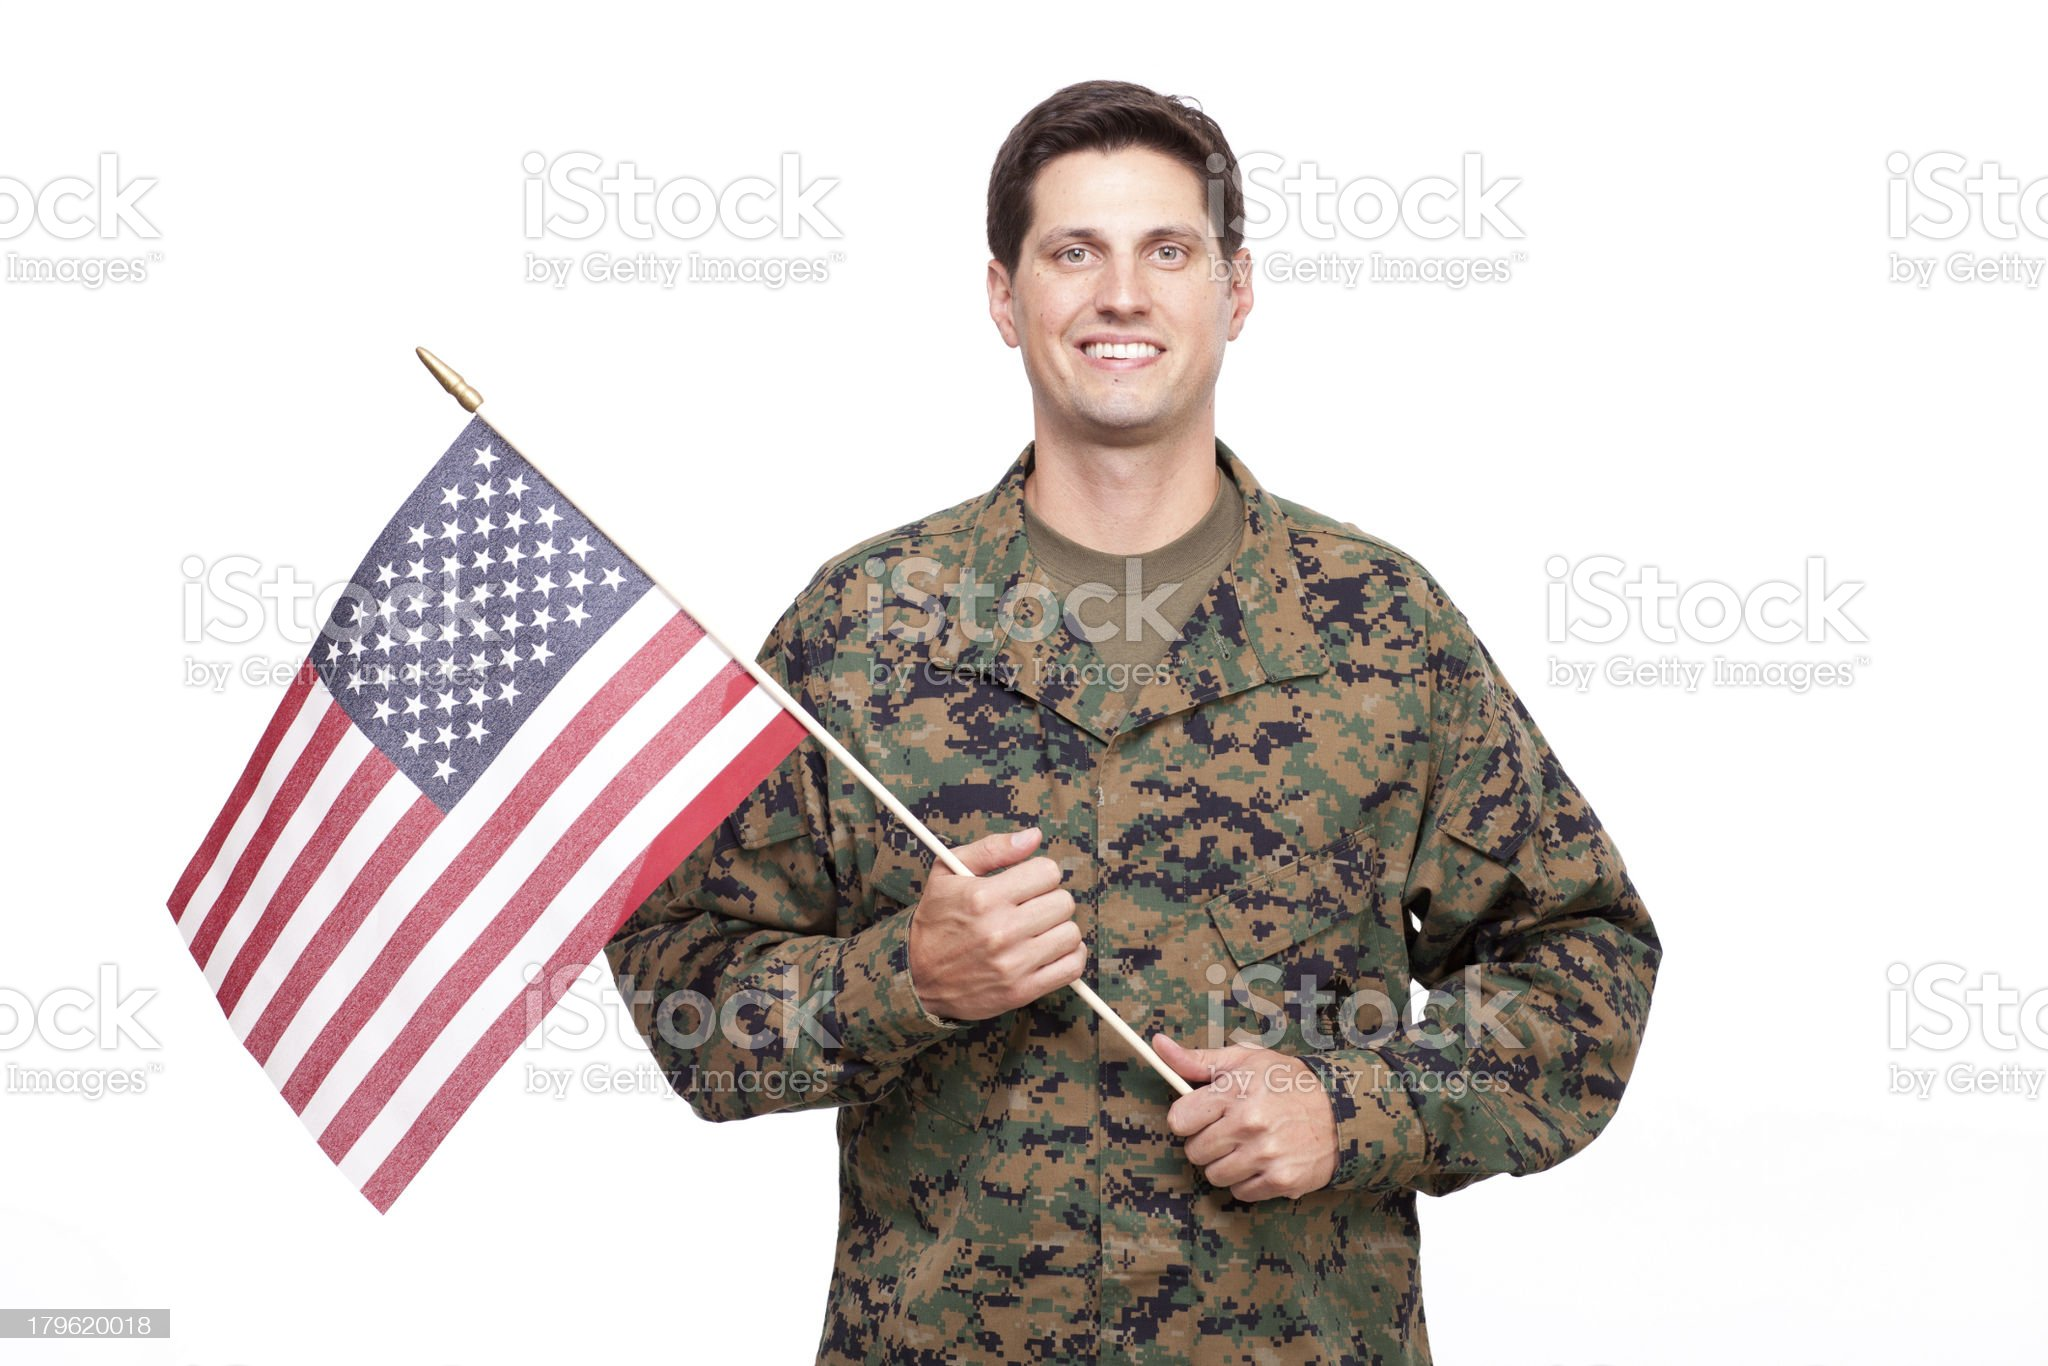 Portrait of a smiling young soldier with American flag royalty-free stock photo